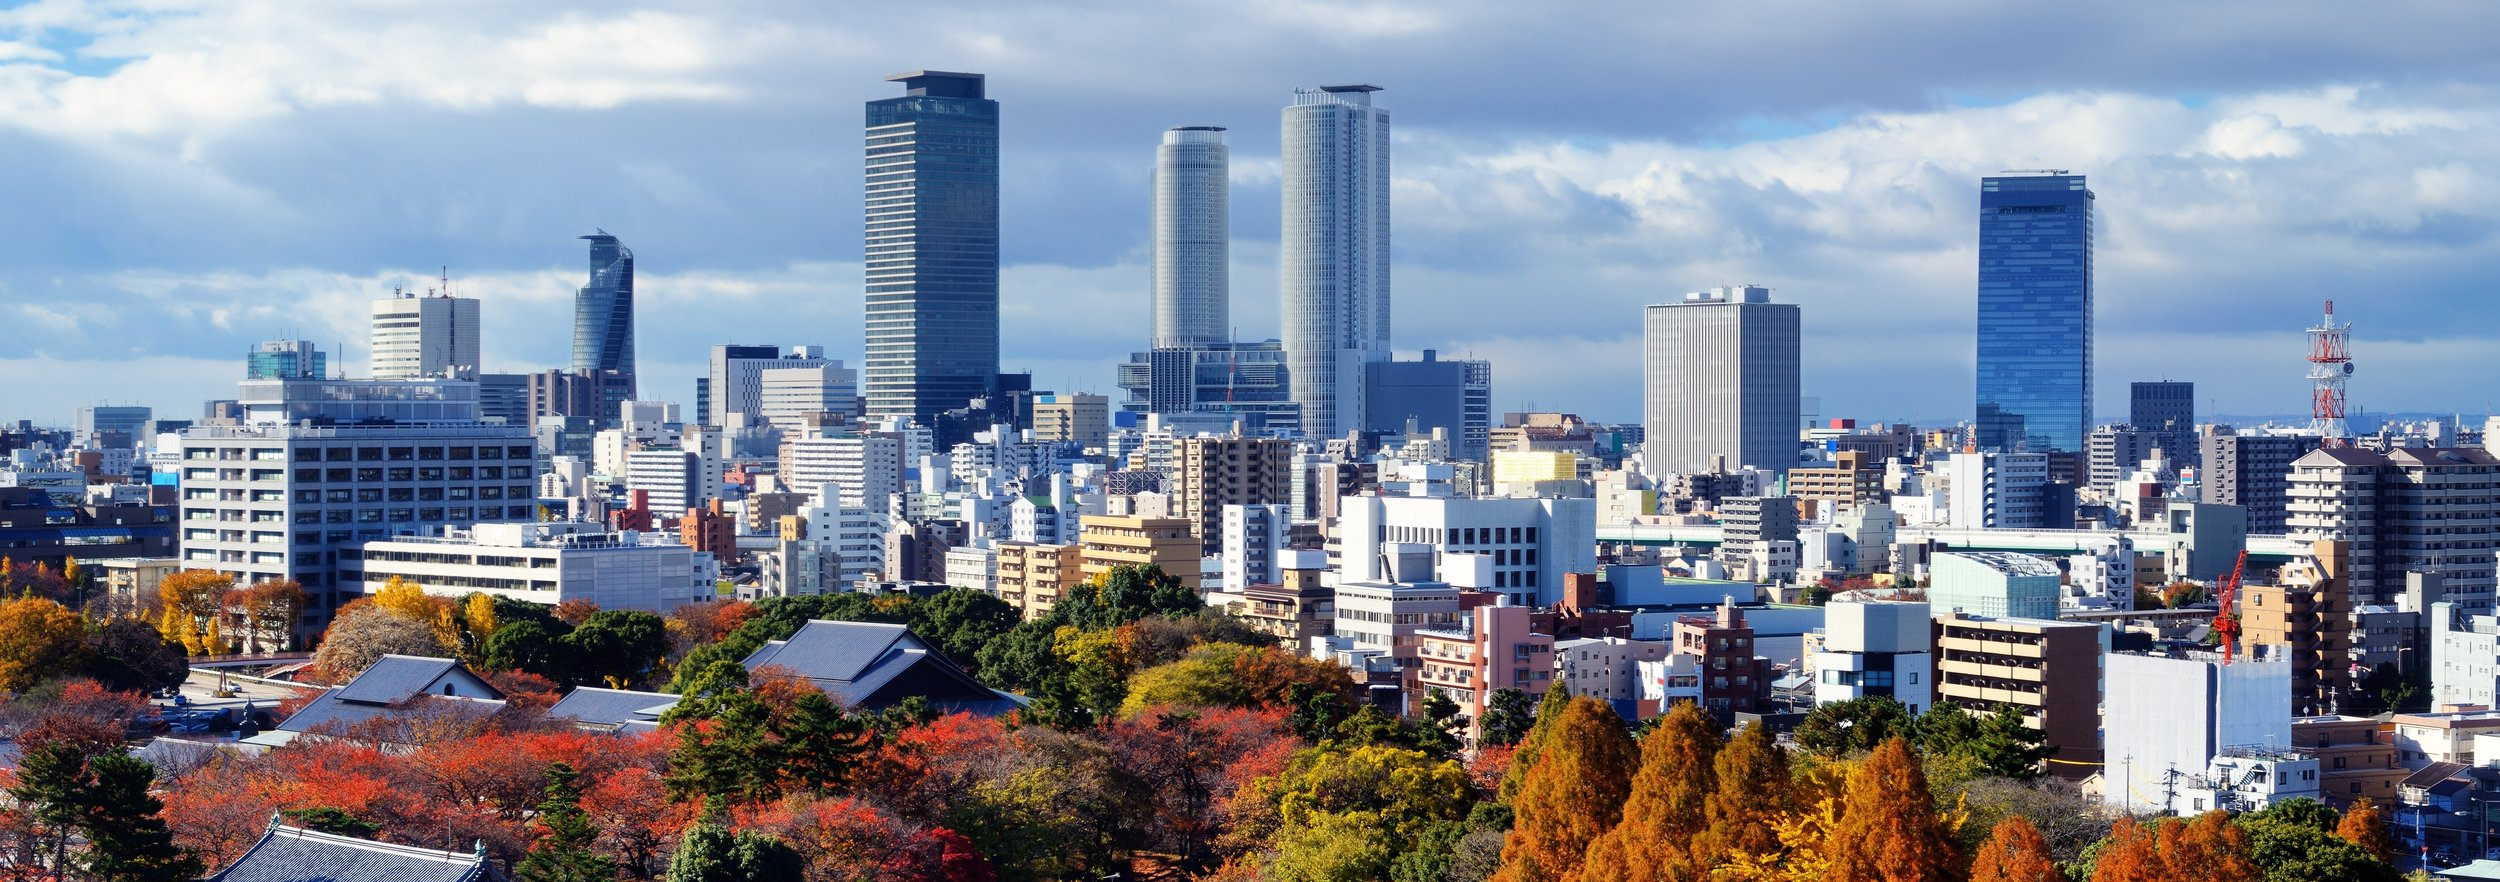 Nagoya, Japan The fourth largest city in the country and home to Hoyu HQ